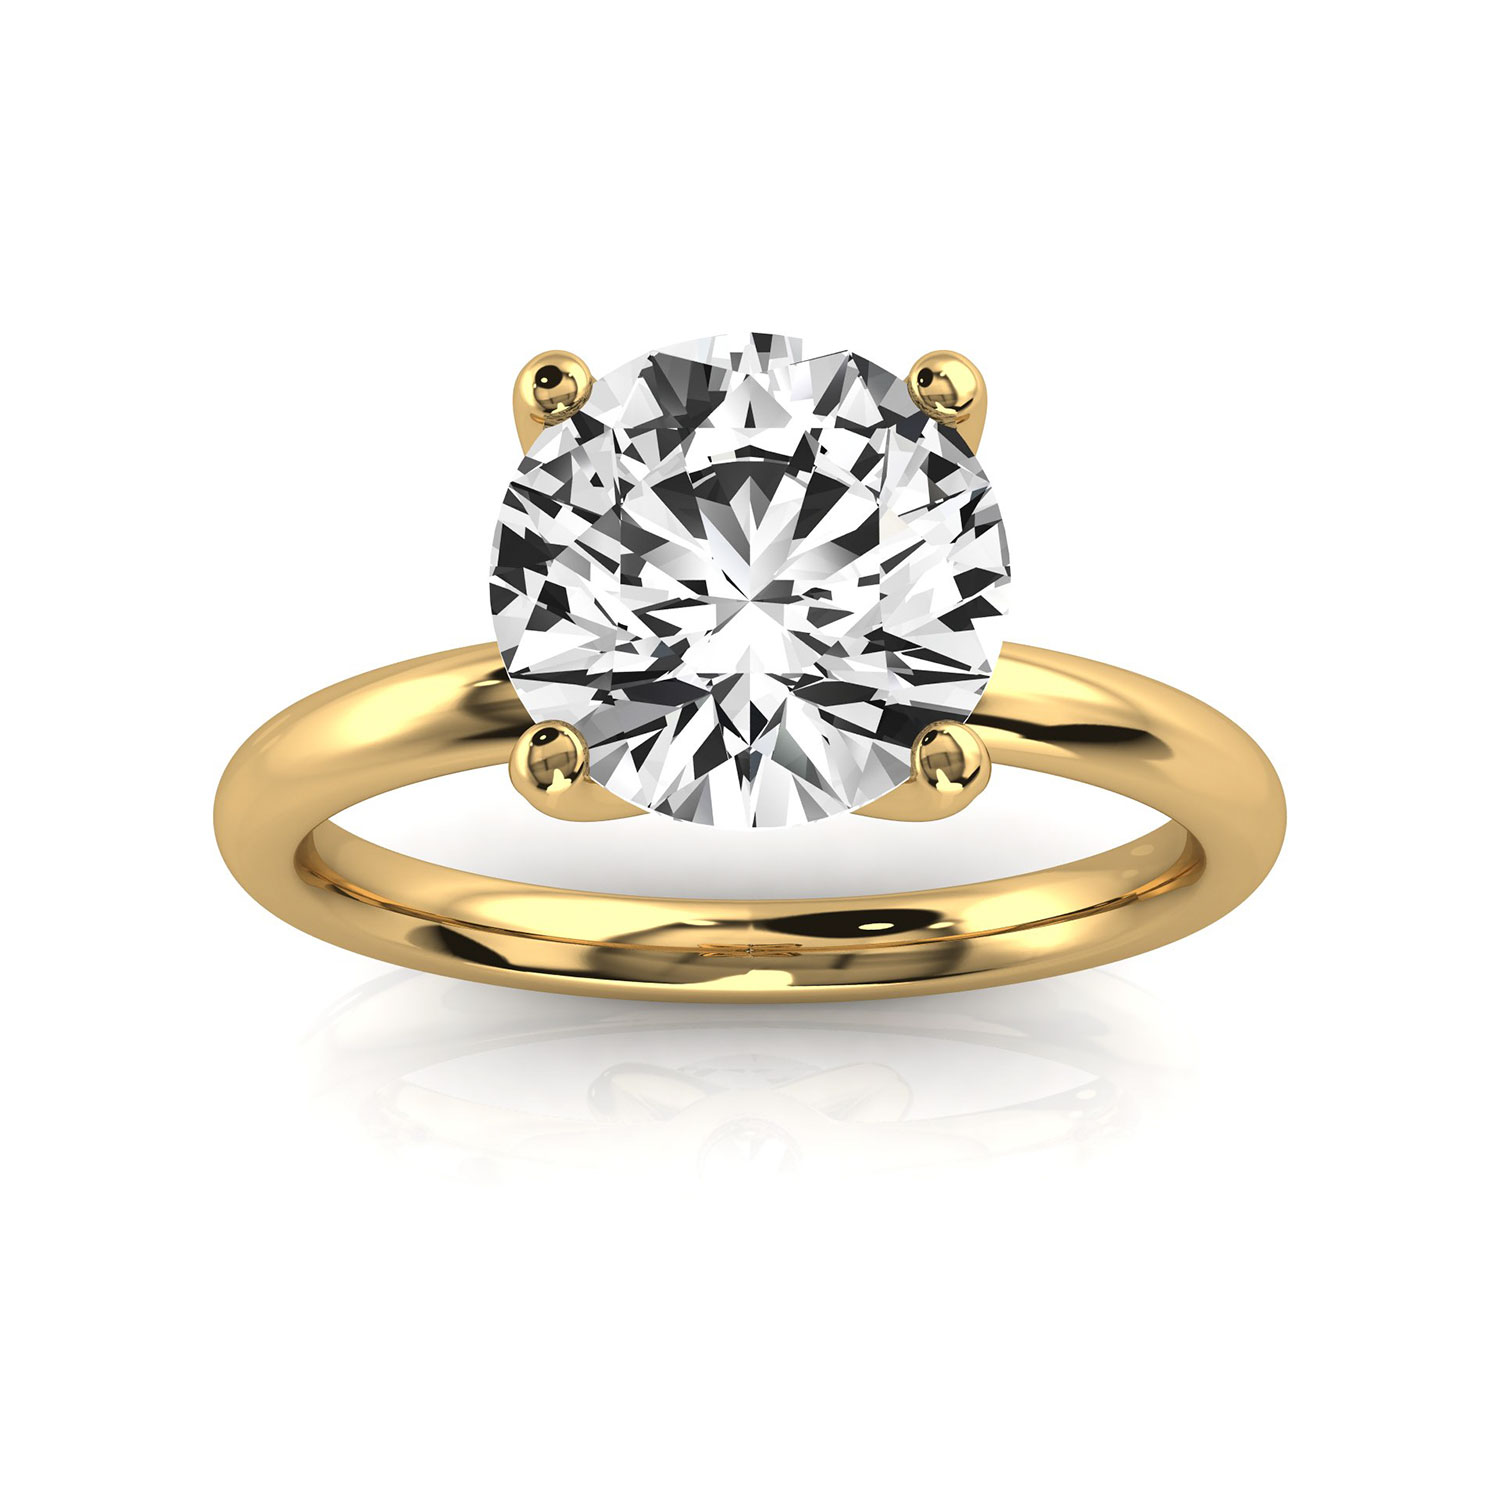 14K Yellow Gold Marina Solitaire Ring